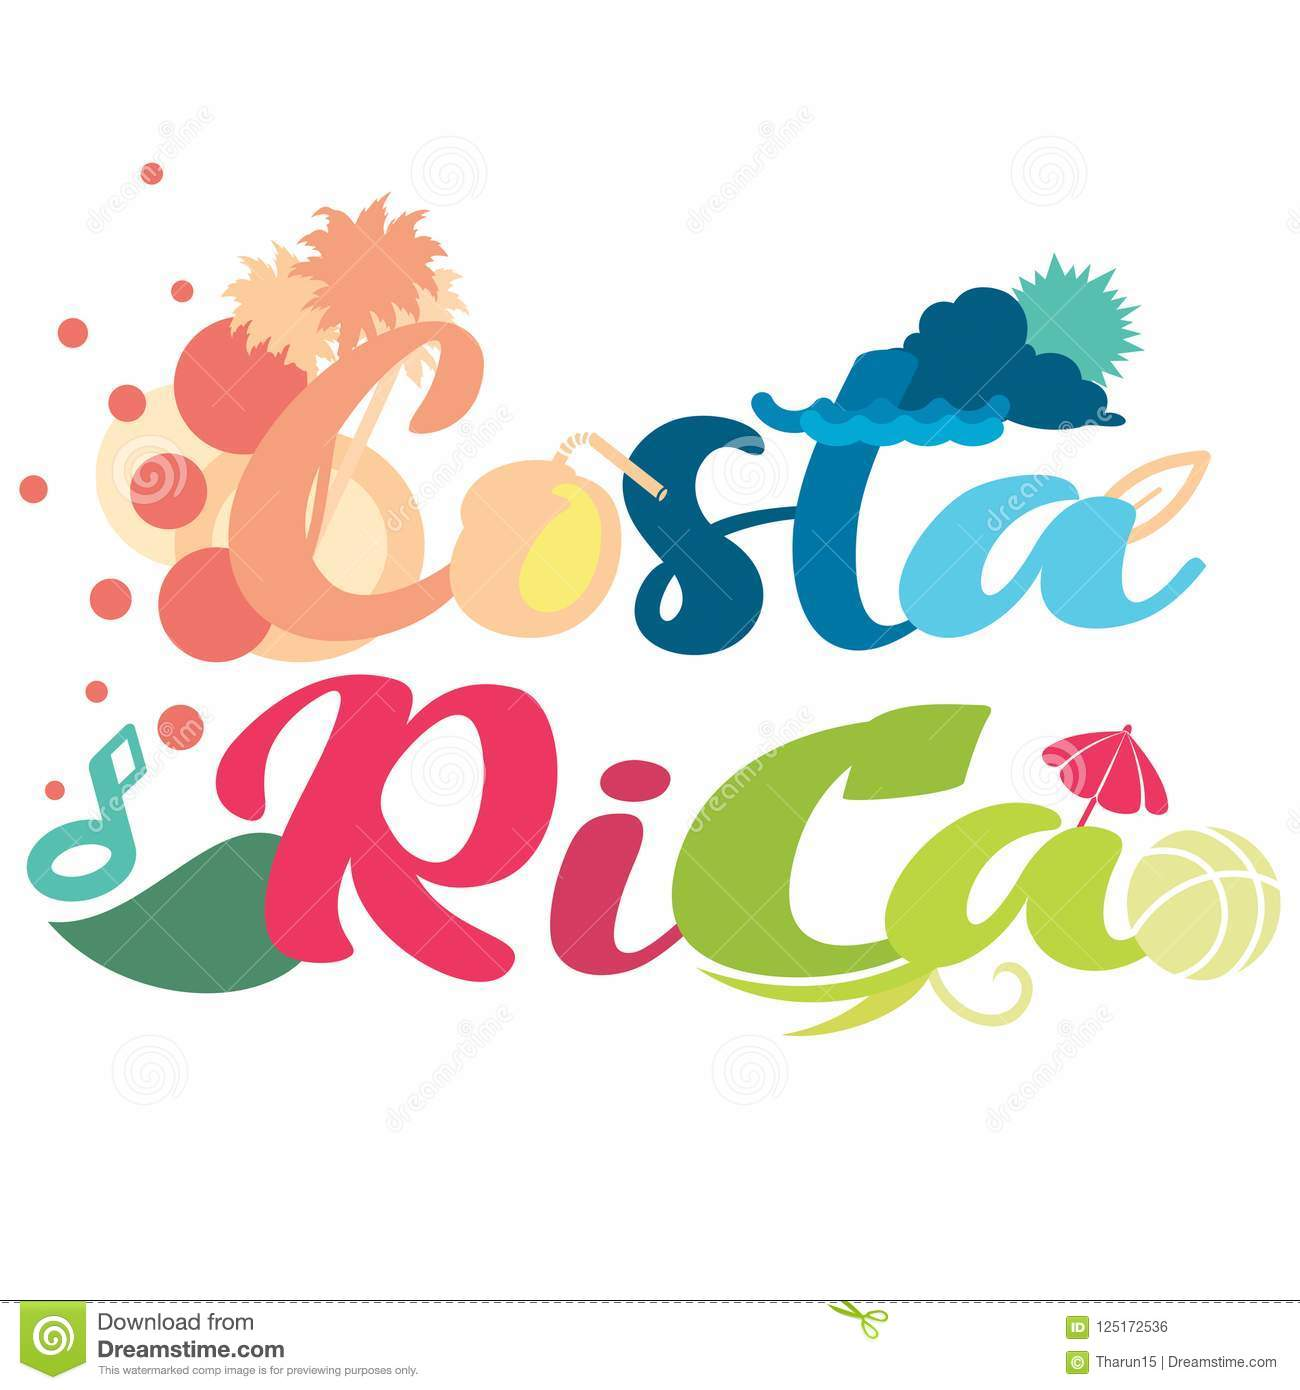 Simple abstract design on Costa Rica typography in vector format